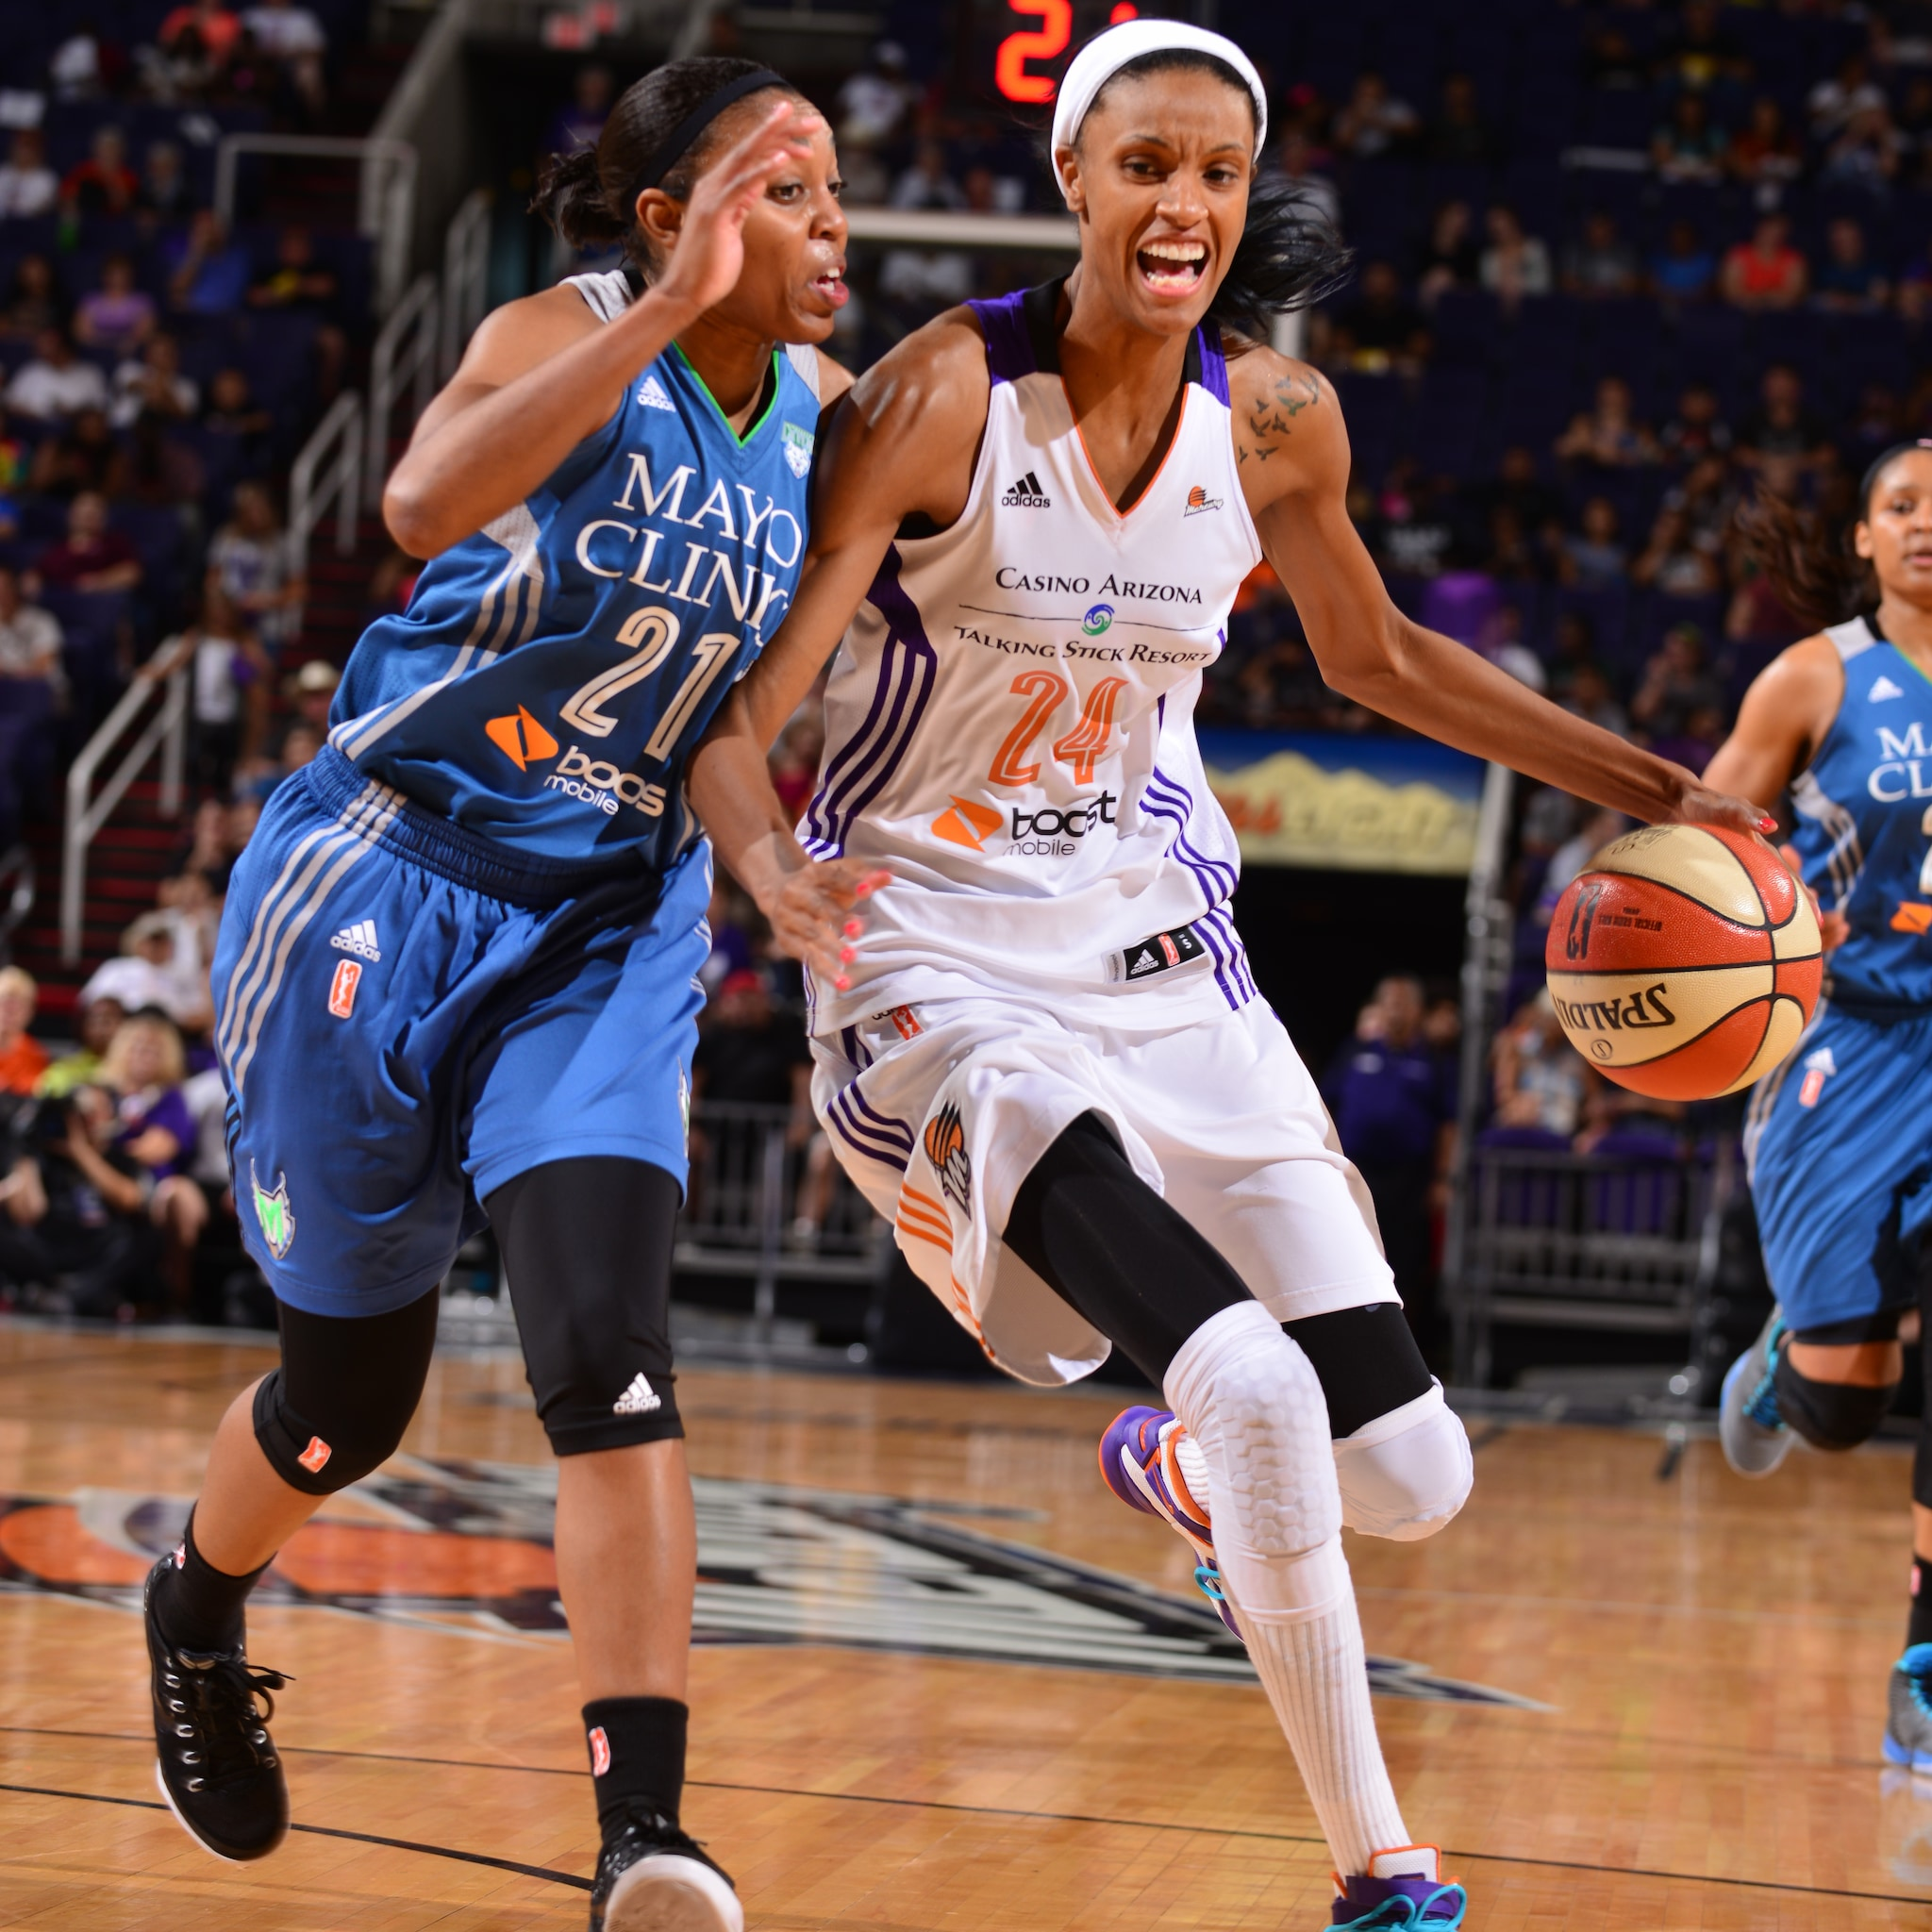 Mercury forward DeWanna Bonner, despite her recent struggles, returned to superstar form on Sunday night, dropping a game-high 21 points to go with four rebounds and three blocked shots.